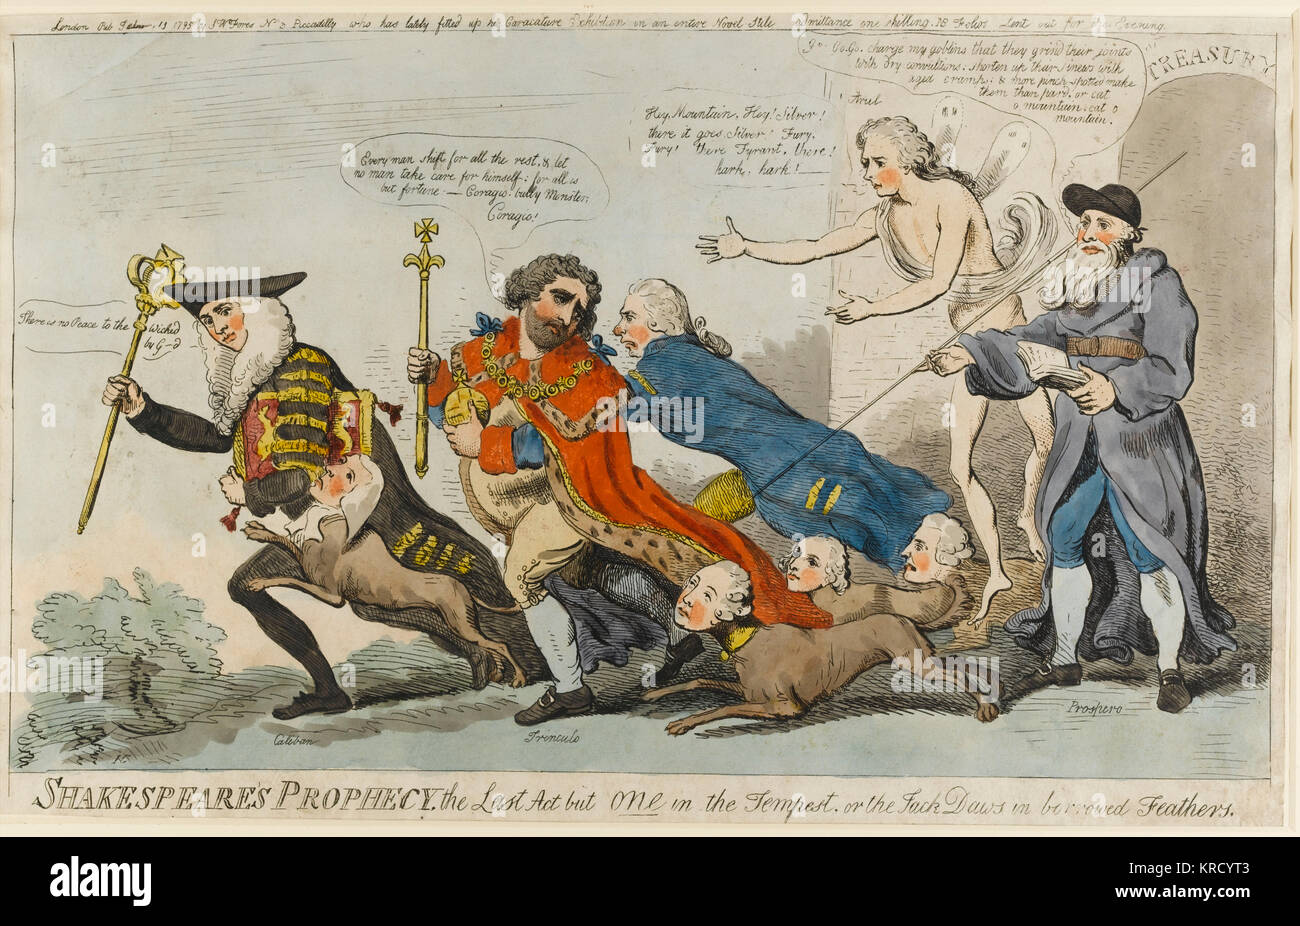 Satirical cartoon, Shakespeare's Prophecy, the Last Act but one in the Tempest, or the Jack Daws in borrowed - Stock Image